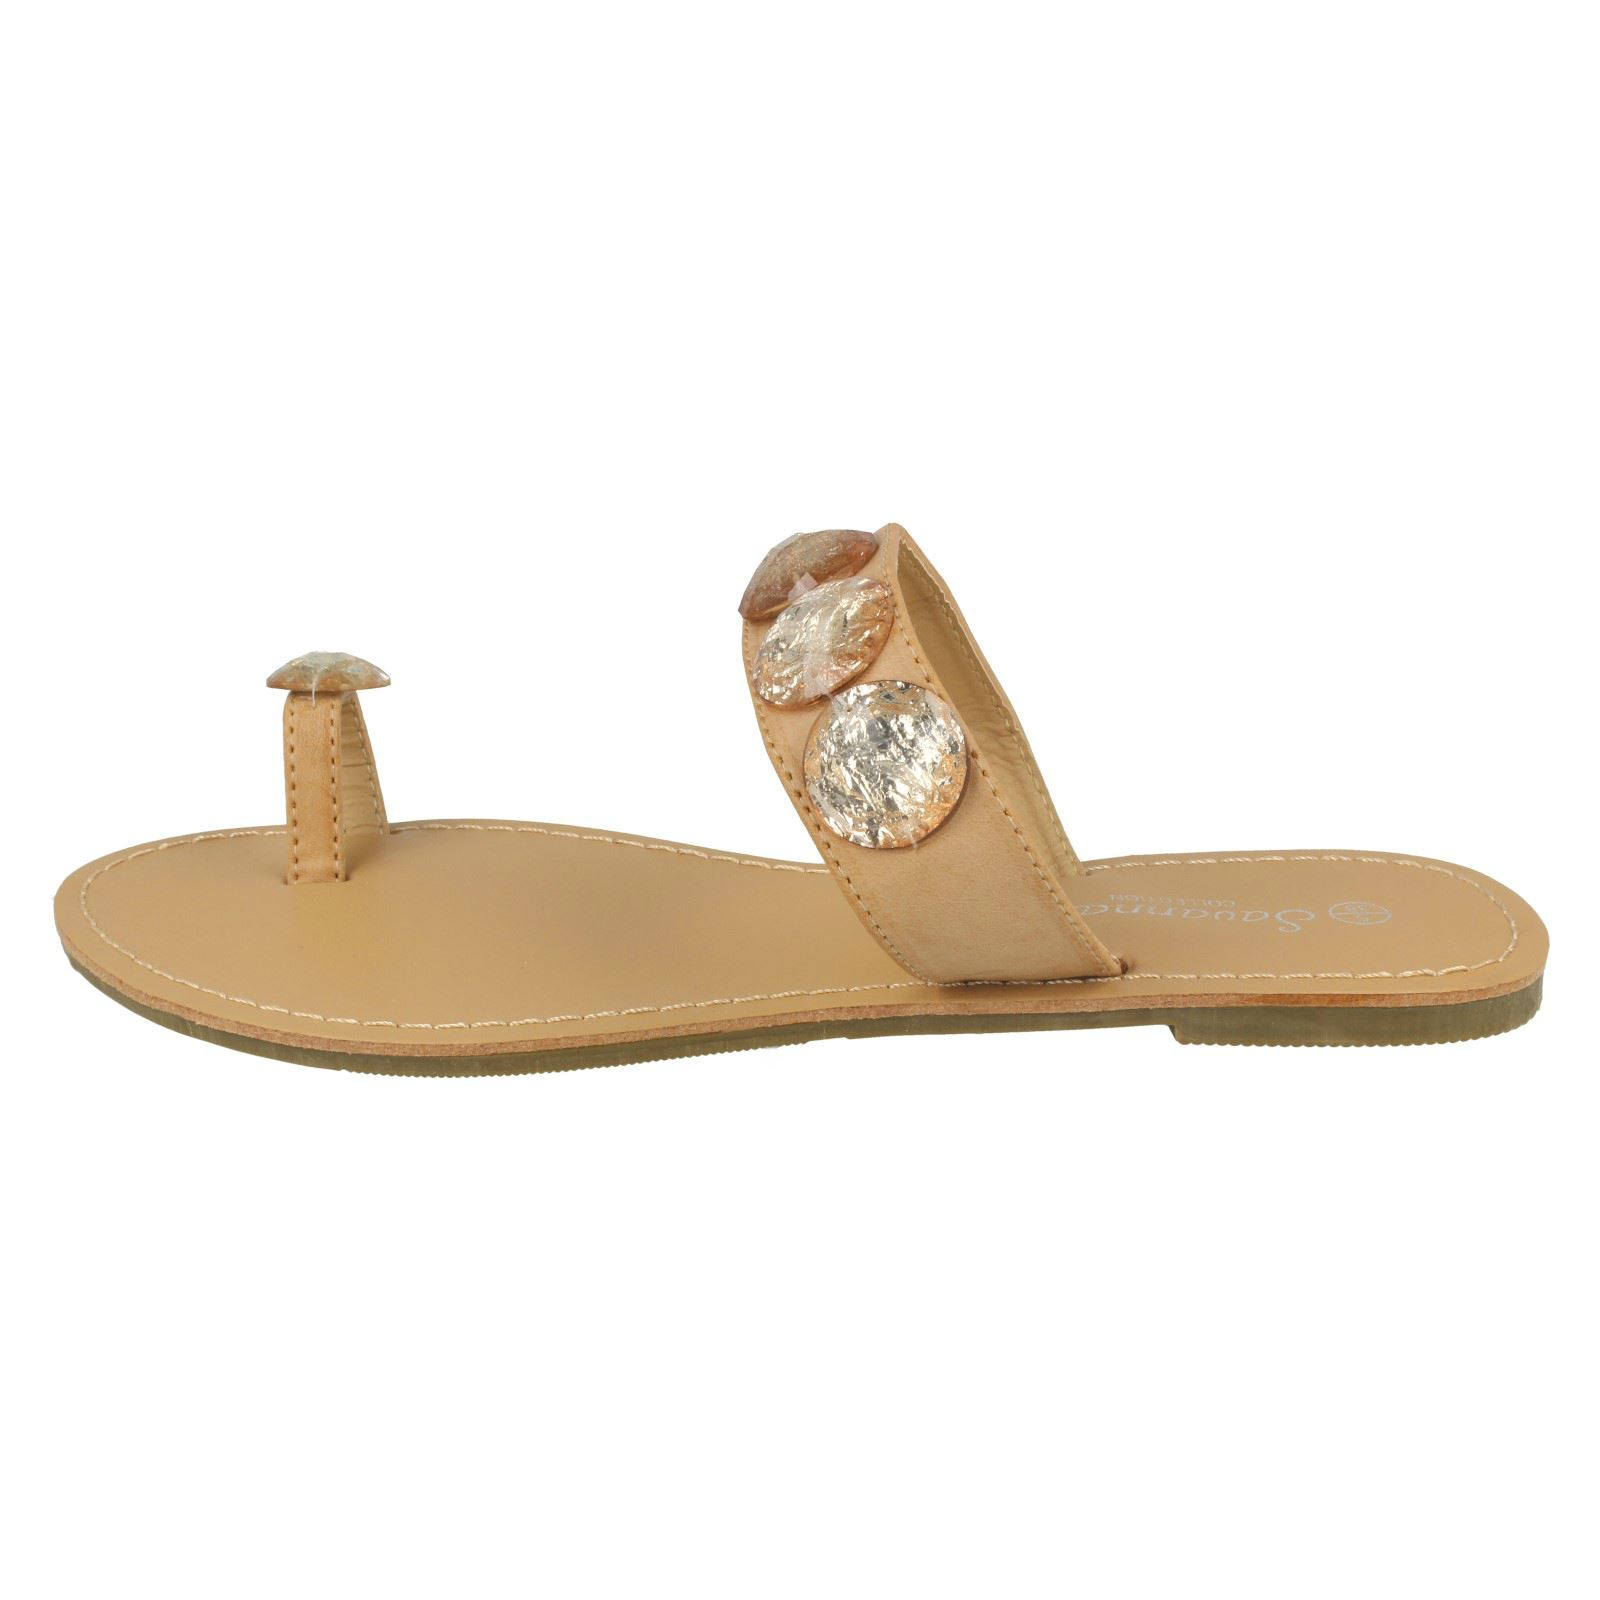 Damas Savannah Sandalias Planas Toe Loop -